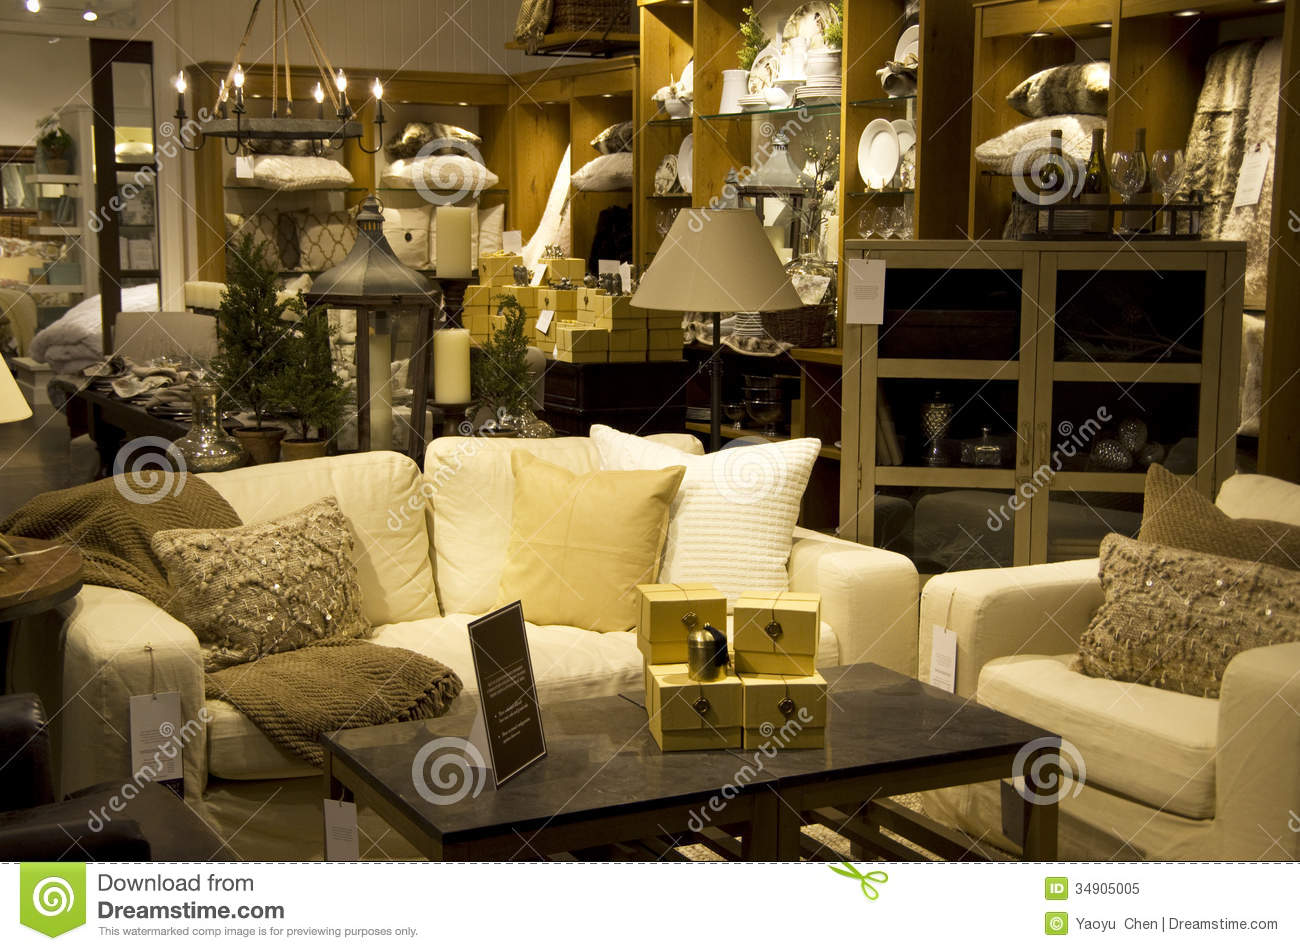 Luxury furniture home decor store royalty free stock photo for Home decorations pictures